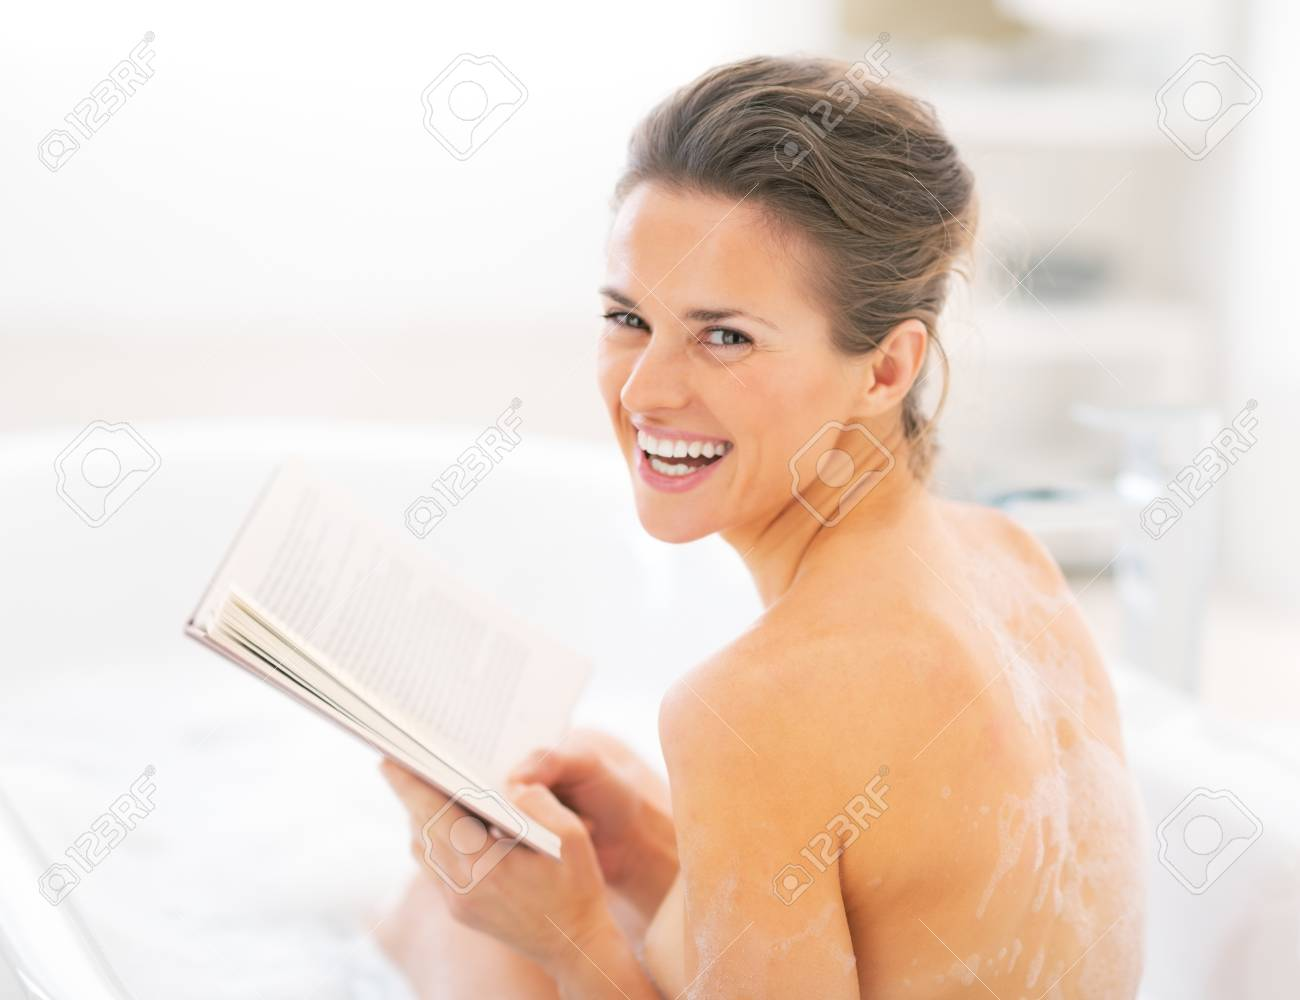 Portrait of happy young woman reading book in bathtub Stock Photo - 29338186